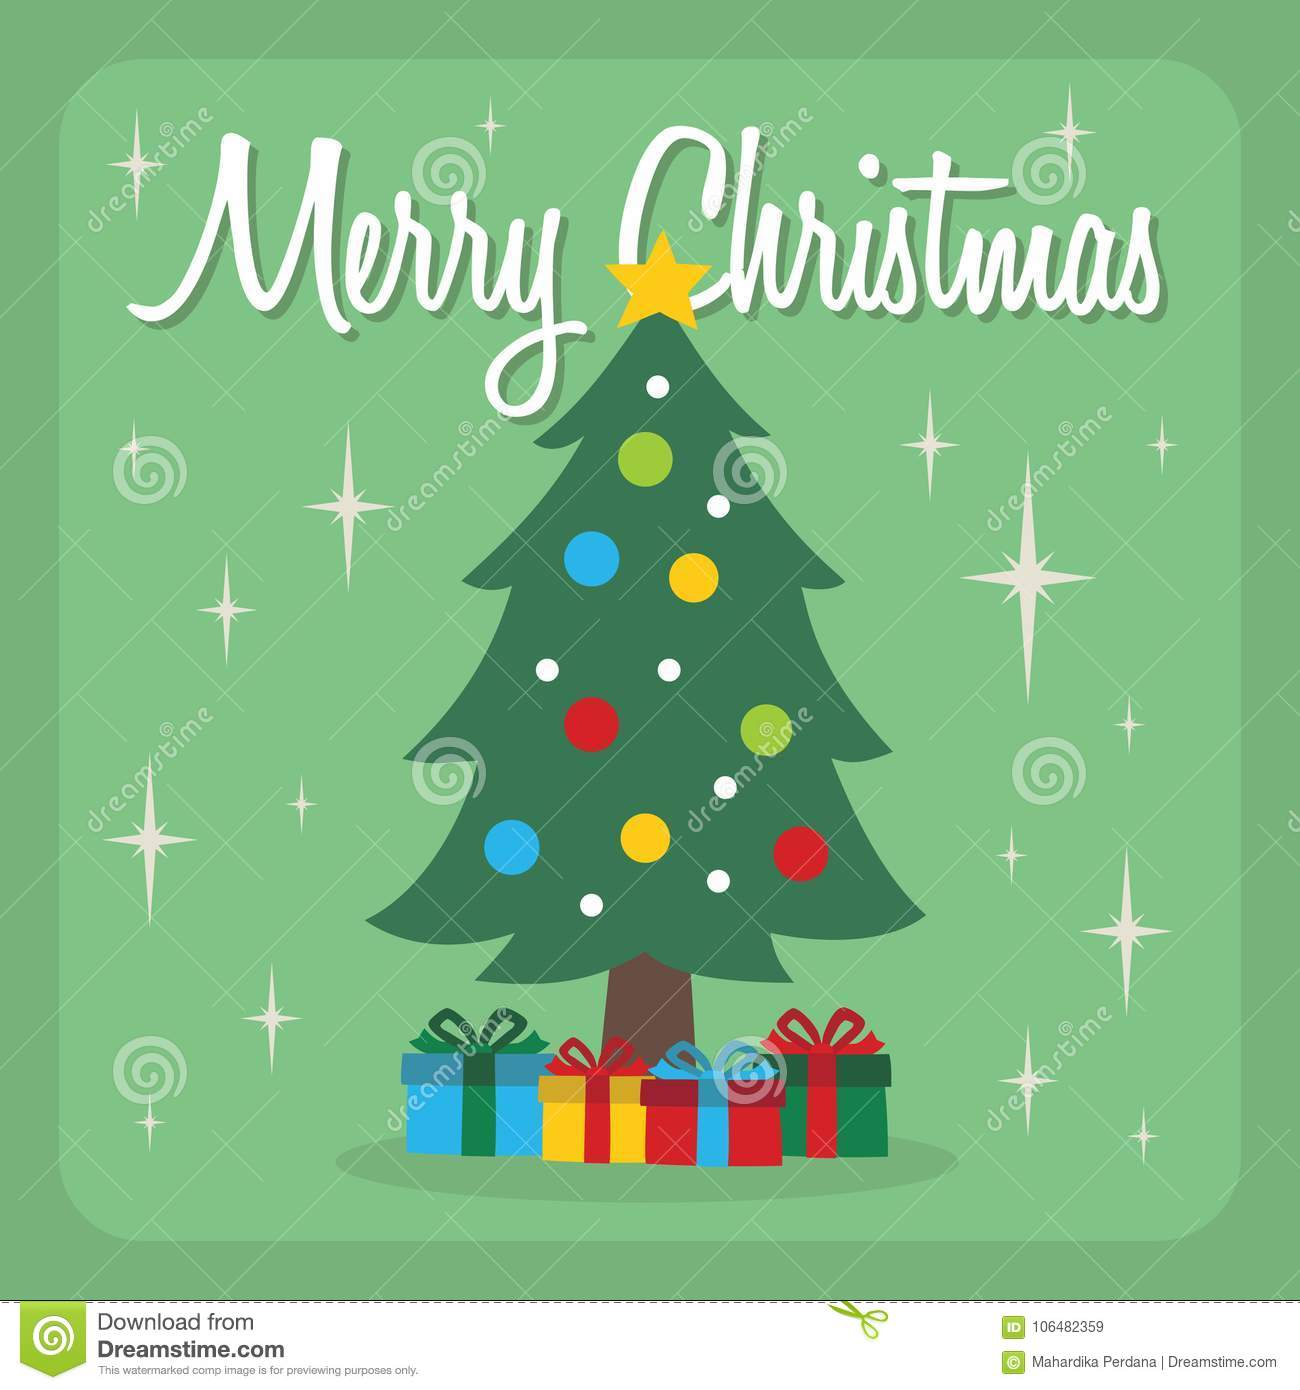 Cartoon Christmas Presents Tree Stock Illustrations 6 355 Cartoon Christmas Presents Tree Stock Illustrations Vectors Clipart Dreamstime Including blank tree templates, decorated trees, abstract patterned trees, and more! https www dreamstime com nice christmas tree presents cartoon illustration nice christmas tree presents cartoon illustration image image106482359